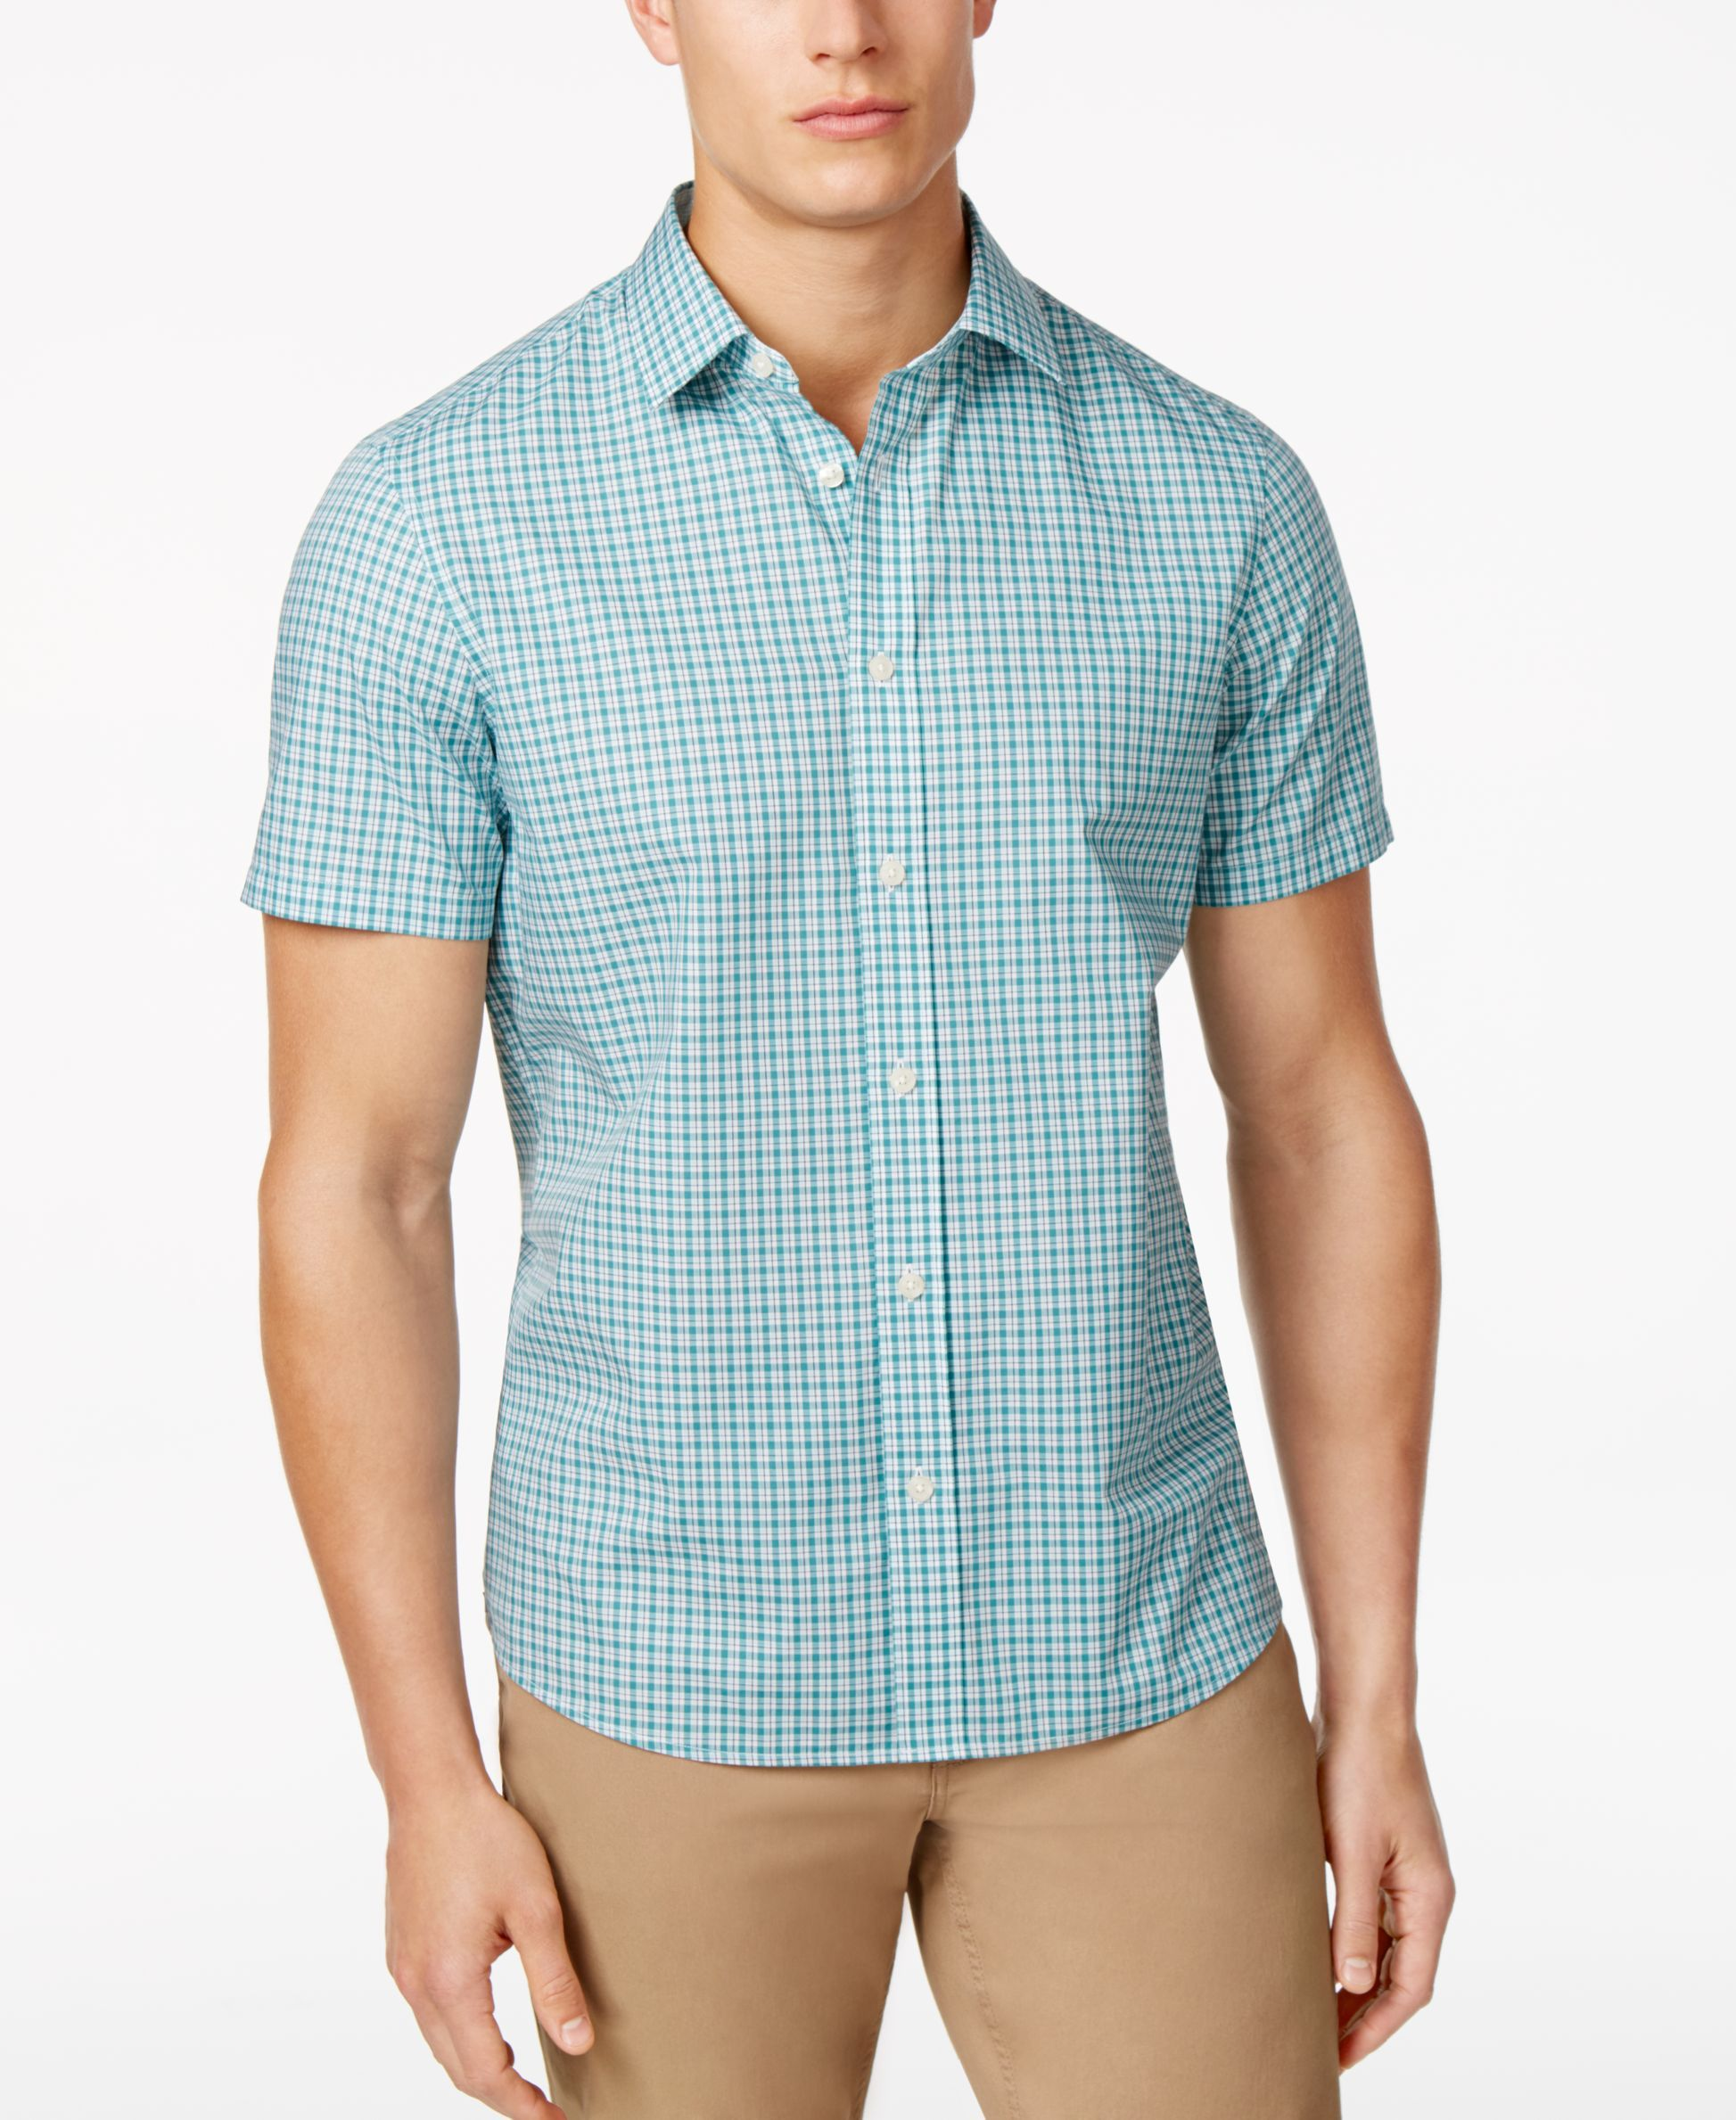 Michael Kors Men's Thompson Plaid Cotton Shirt